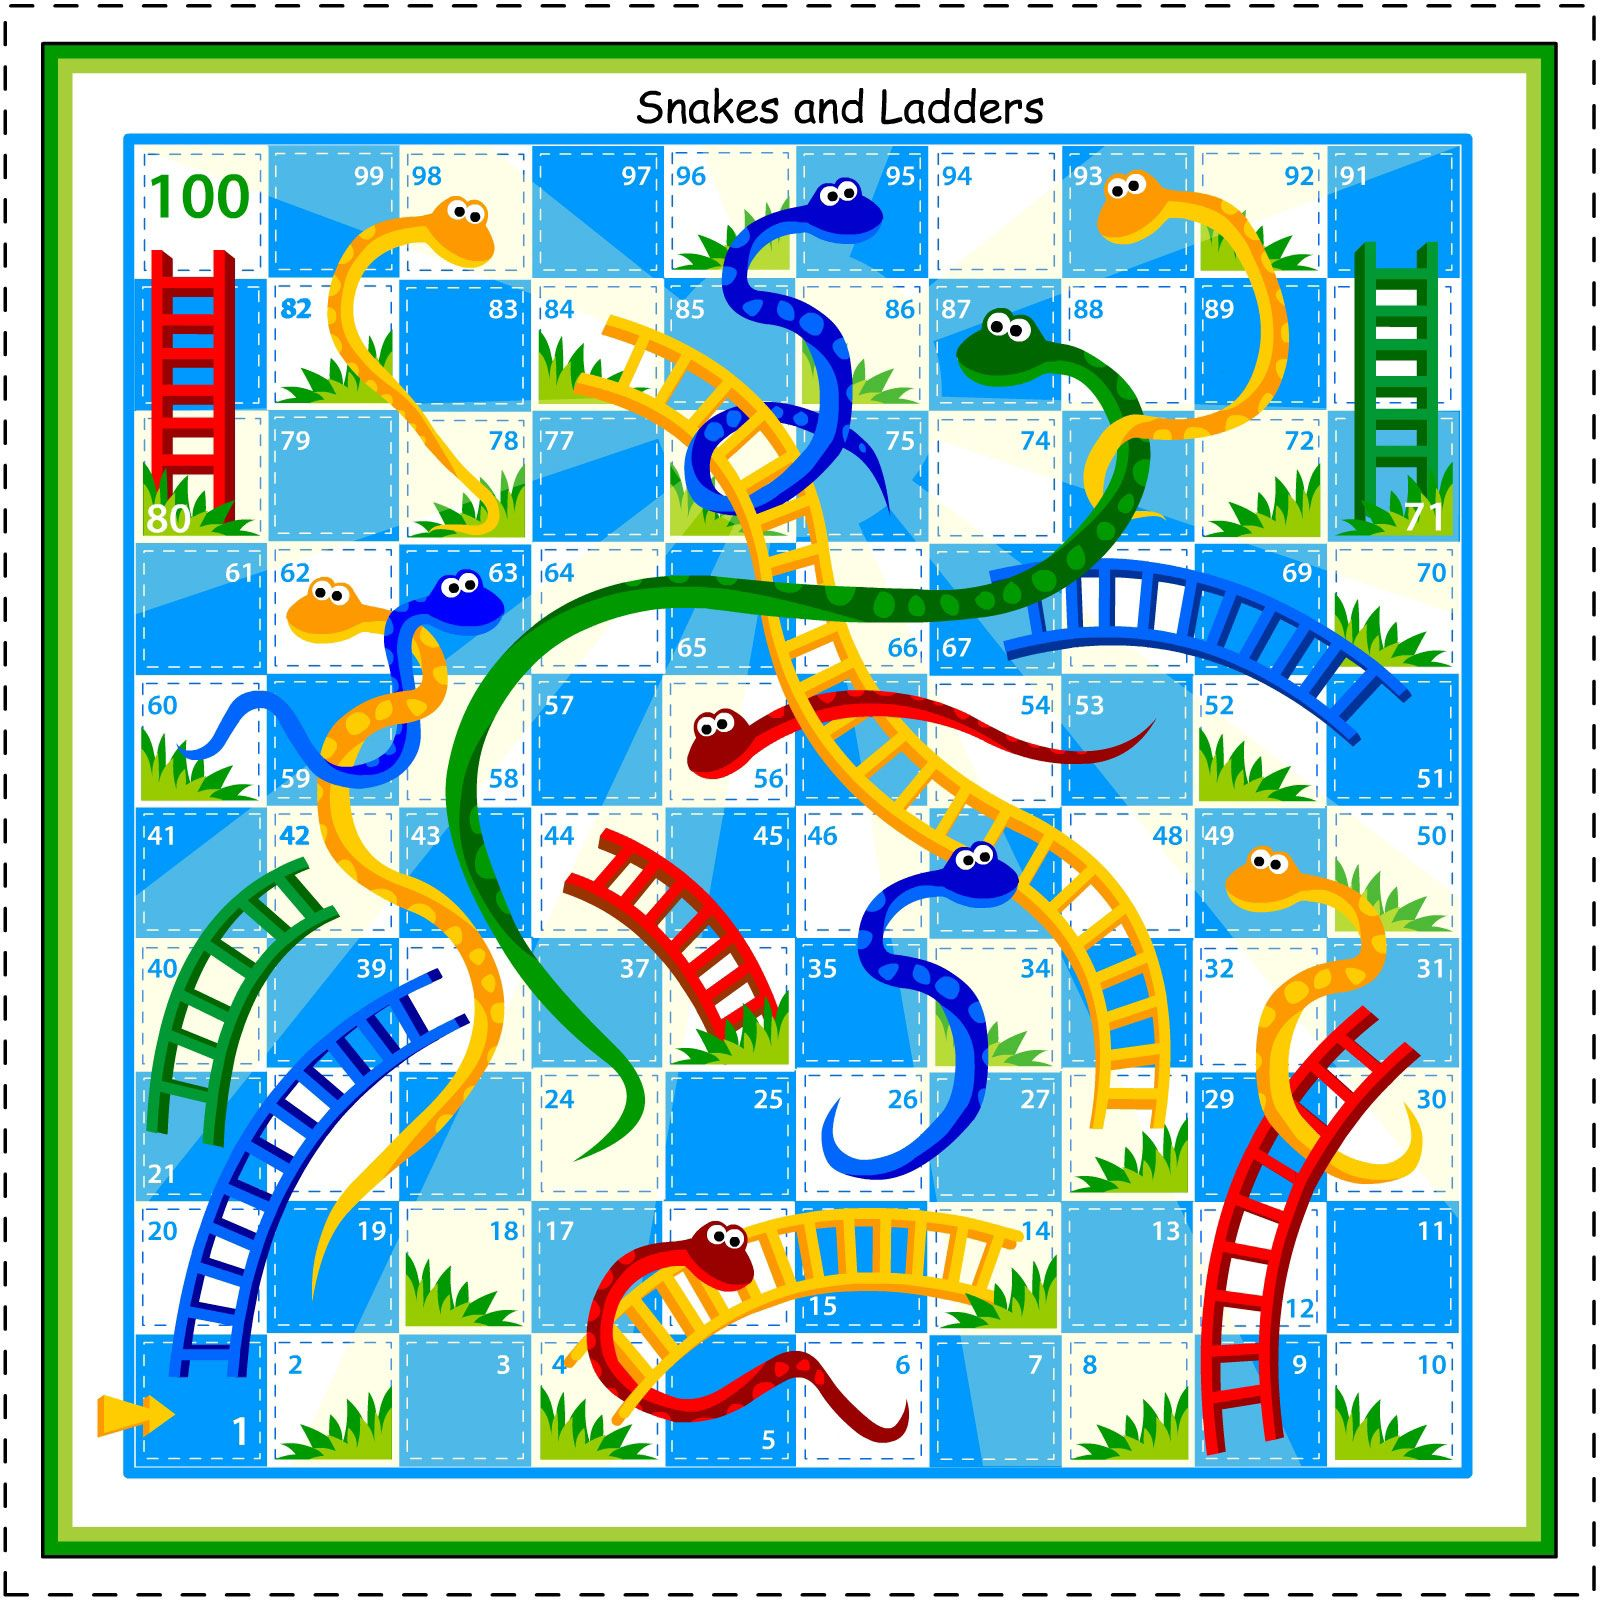 snakes and ladders template - Google Search | Wiskunde | Pinterest ...